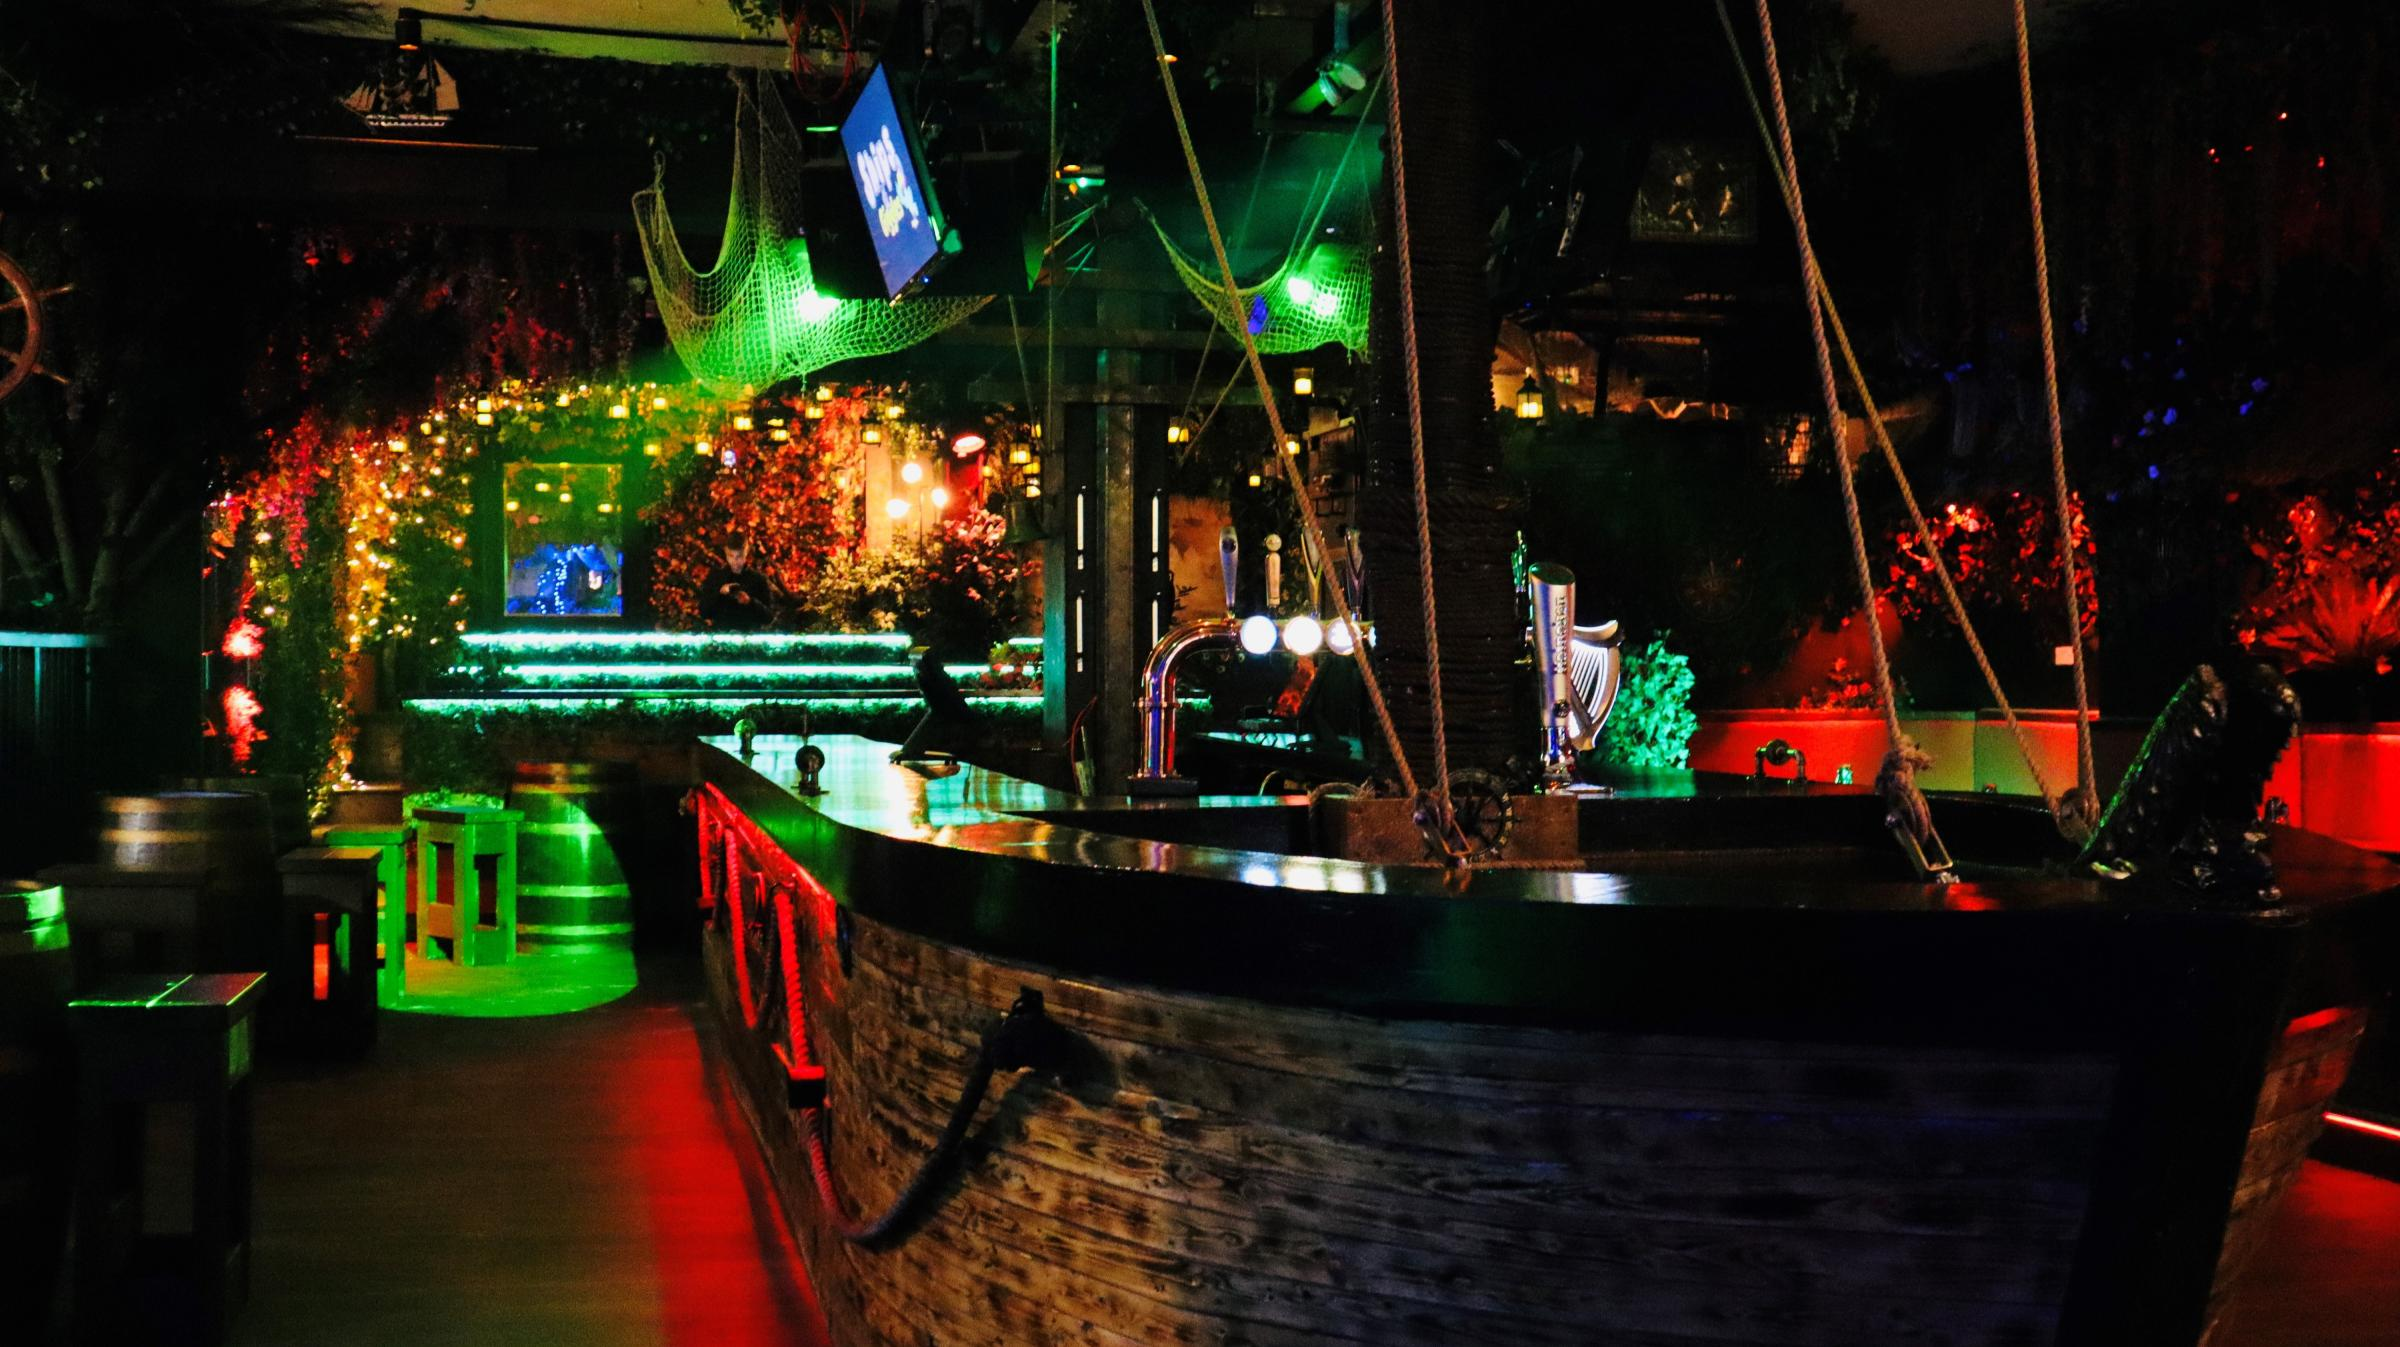 The bar is in the shape of a pirate ship